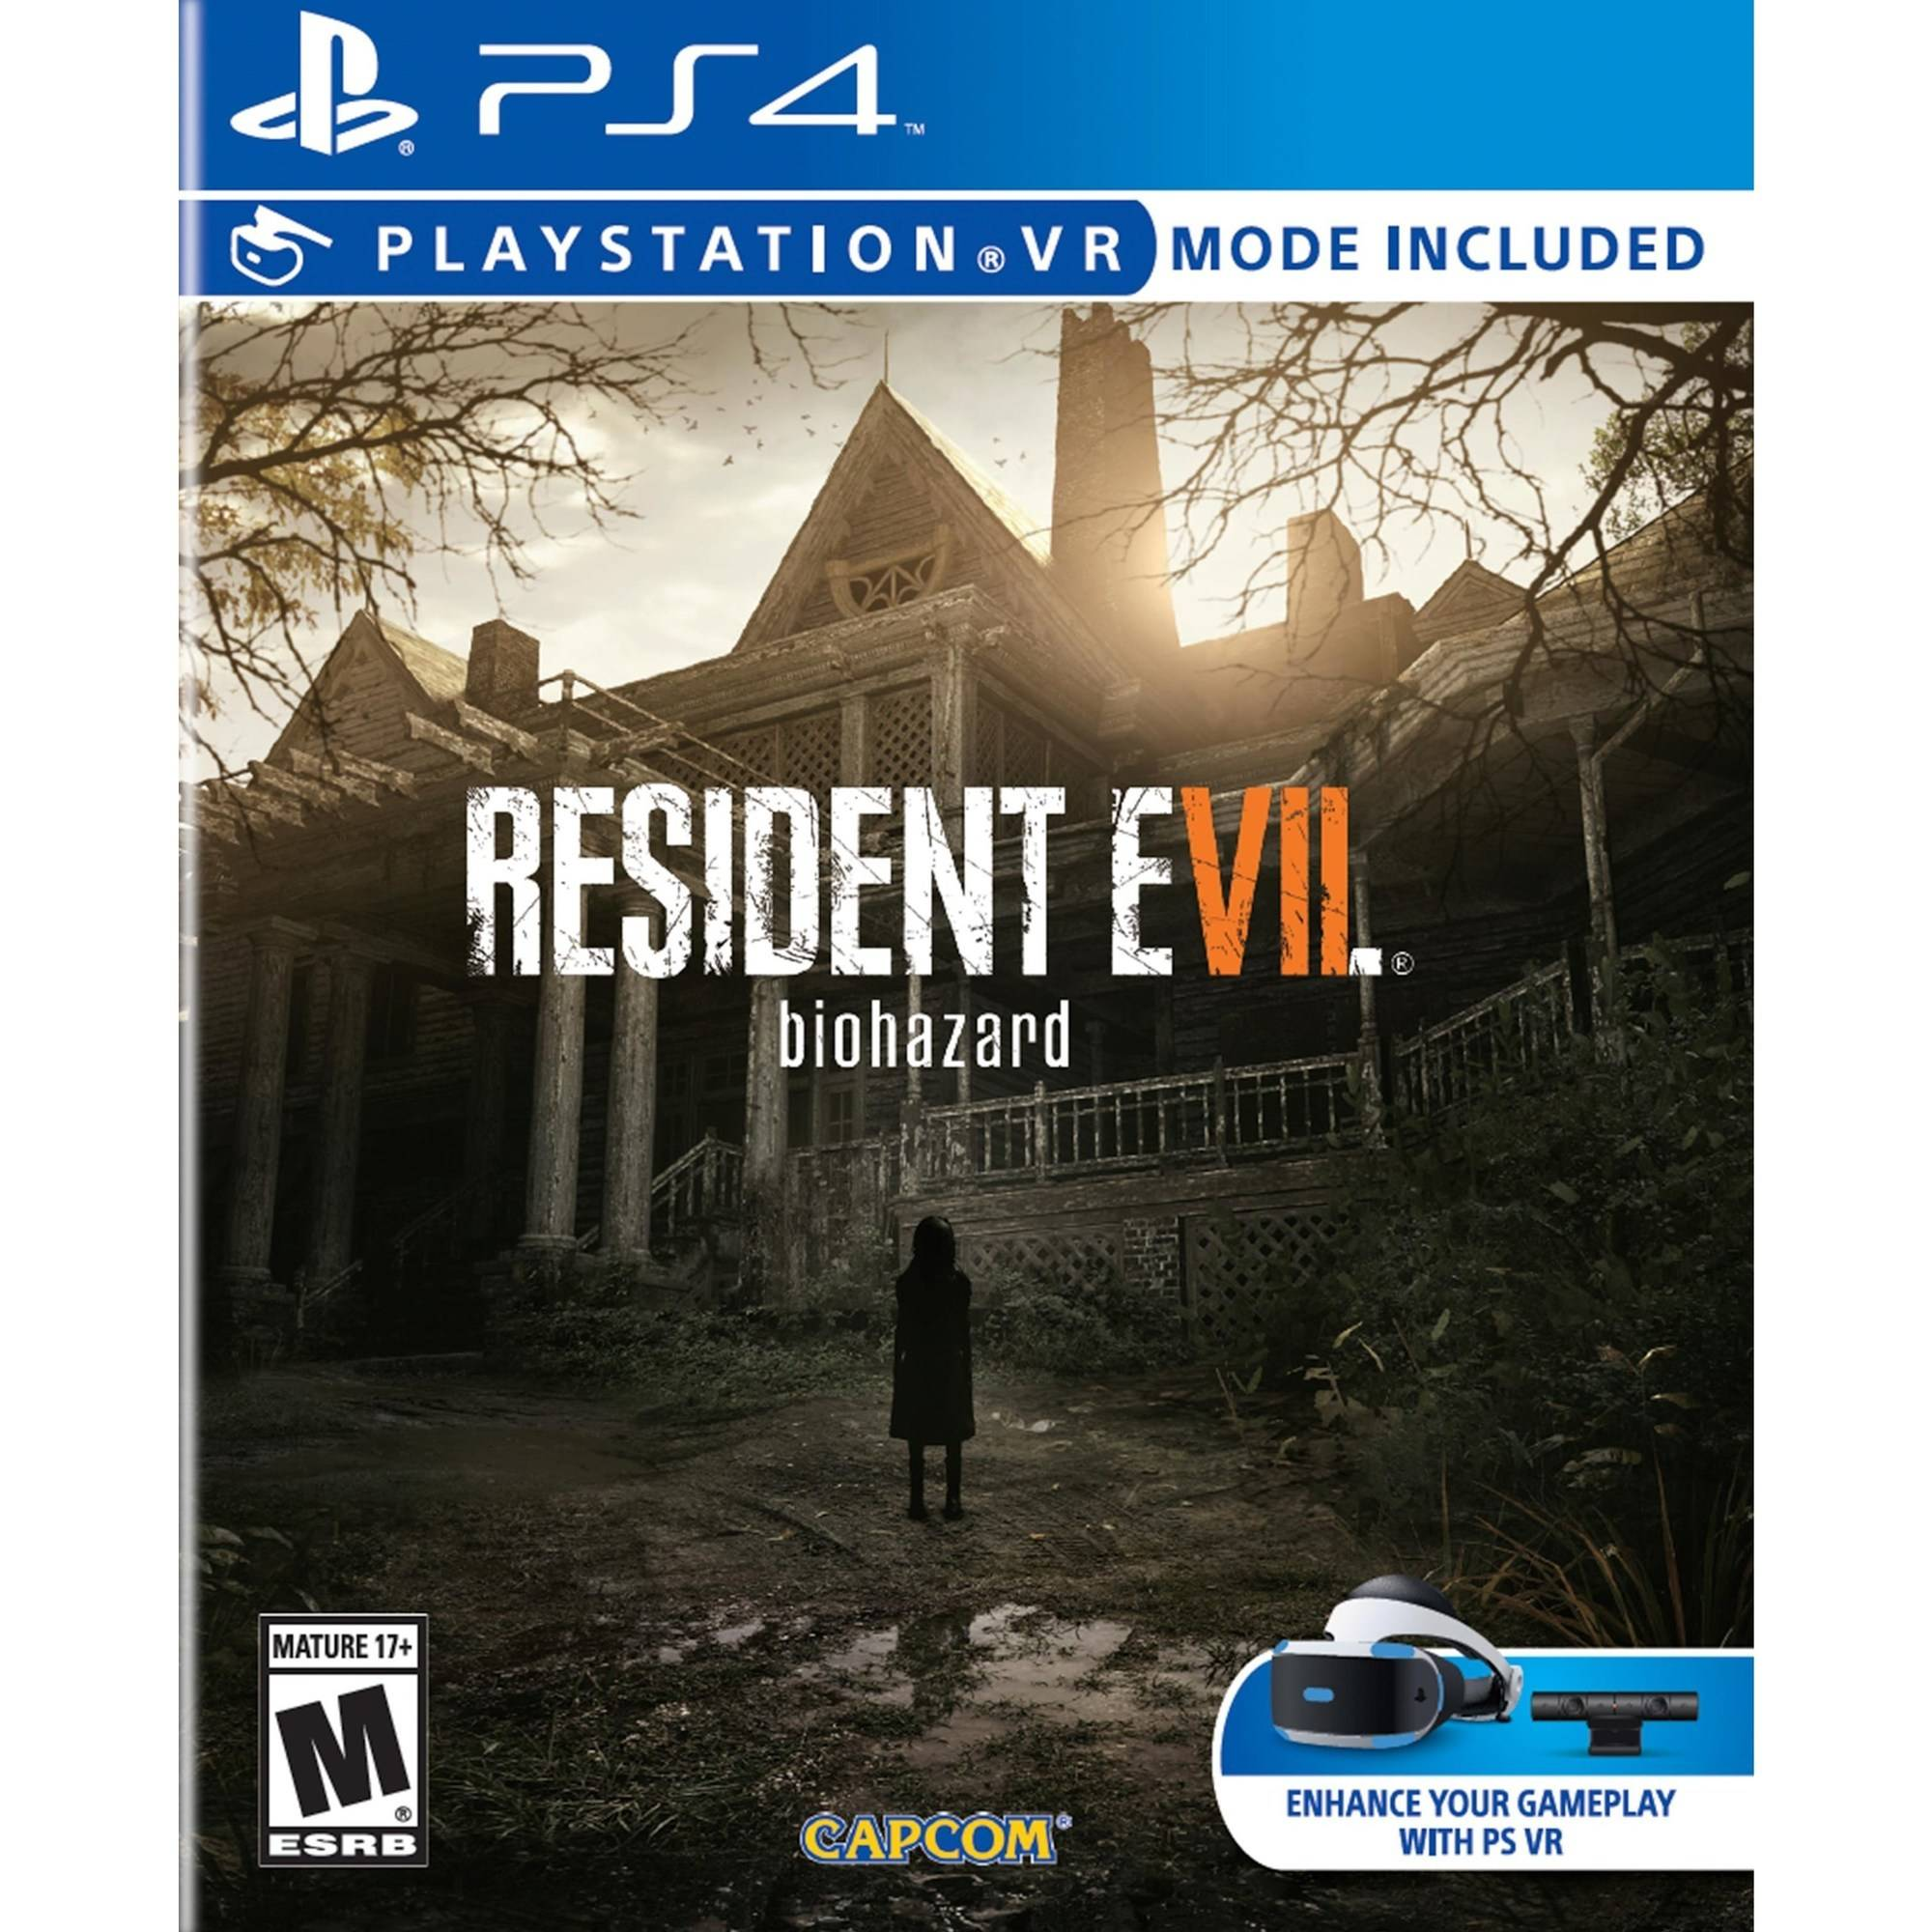 Resident Evil 7: Biohazard for PlayStation 4 by Capcom